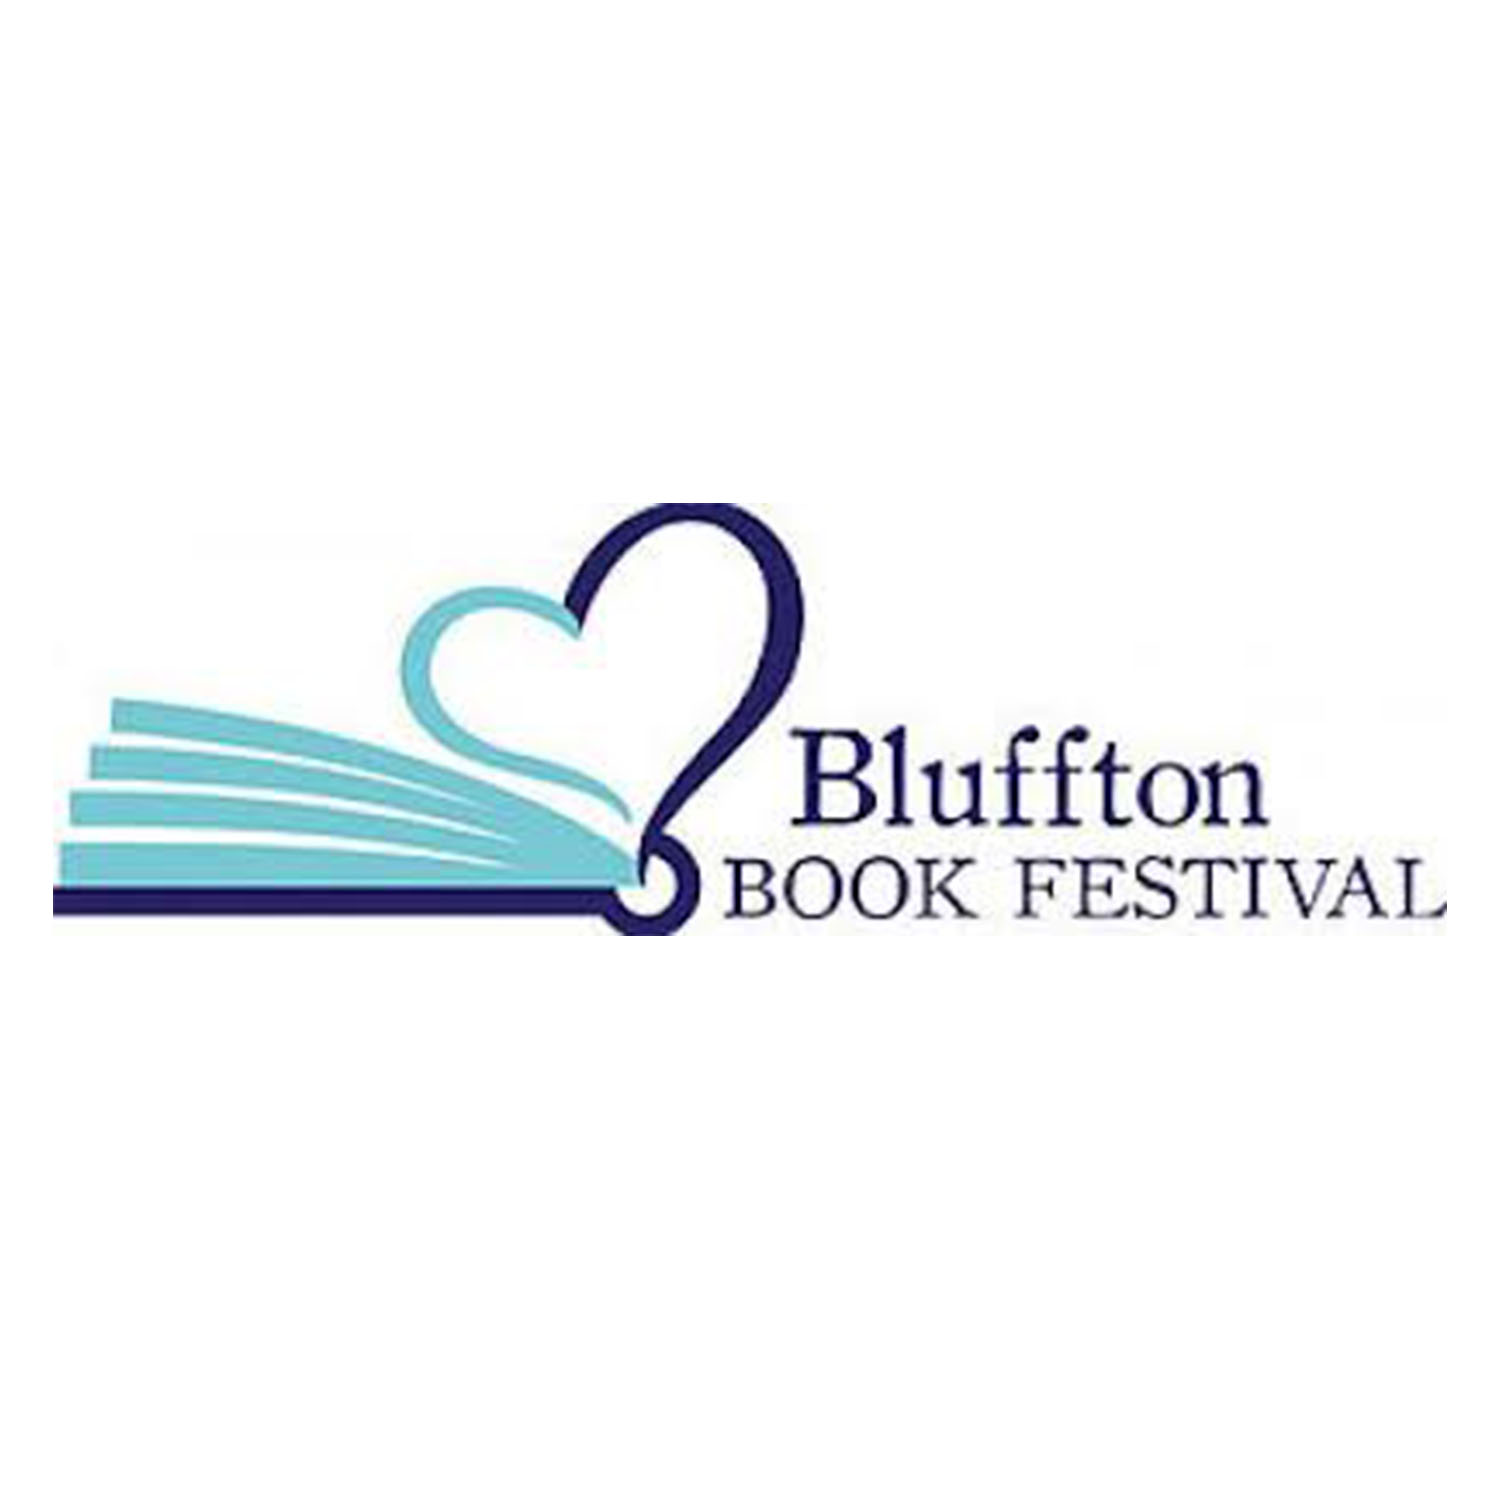 BLUFFTON BOOK FESTIVAL - IDEAS. WORDS. BOOKS.Turning pages, improving lives.Roark & Company is pleased to be once again partnering with the Bluffton Book Festival taking place in Historic Old Town Bluffton on November 17, 2019. Workshops, lecture series and events will lead up to the festival day. Join us and enjoy a day of fun-filled activities for all ages; author meet and greets with local, national and New York Times best selling writers and the pure joy of book buying and entertainment. All proceeds benefit the Literacy Center and the Binc Foundation.